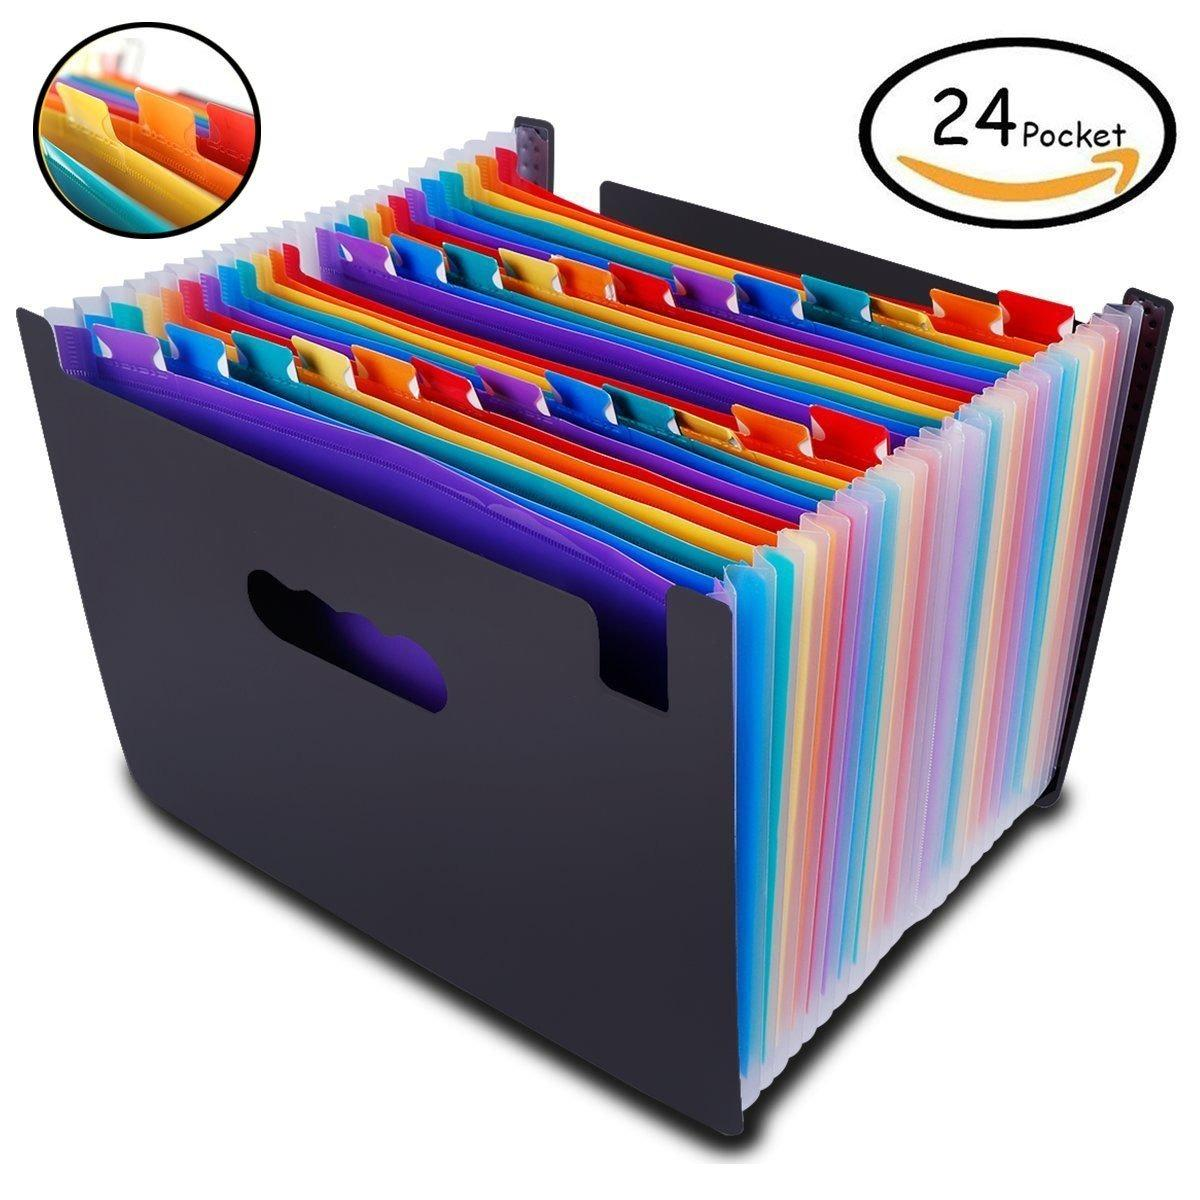 Expanding File Folder Large Plastic Rainbow Expandable File Organizer Self Standing Accordion A4 Document Folder Wallet Briefcase Business Filing Box 24 Pockets Intl Best Buy